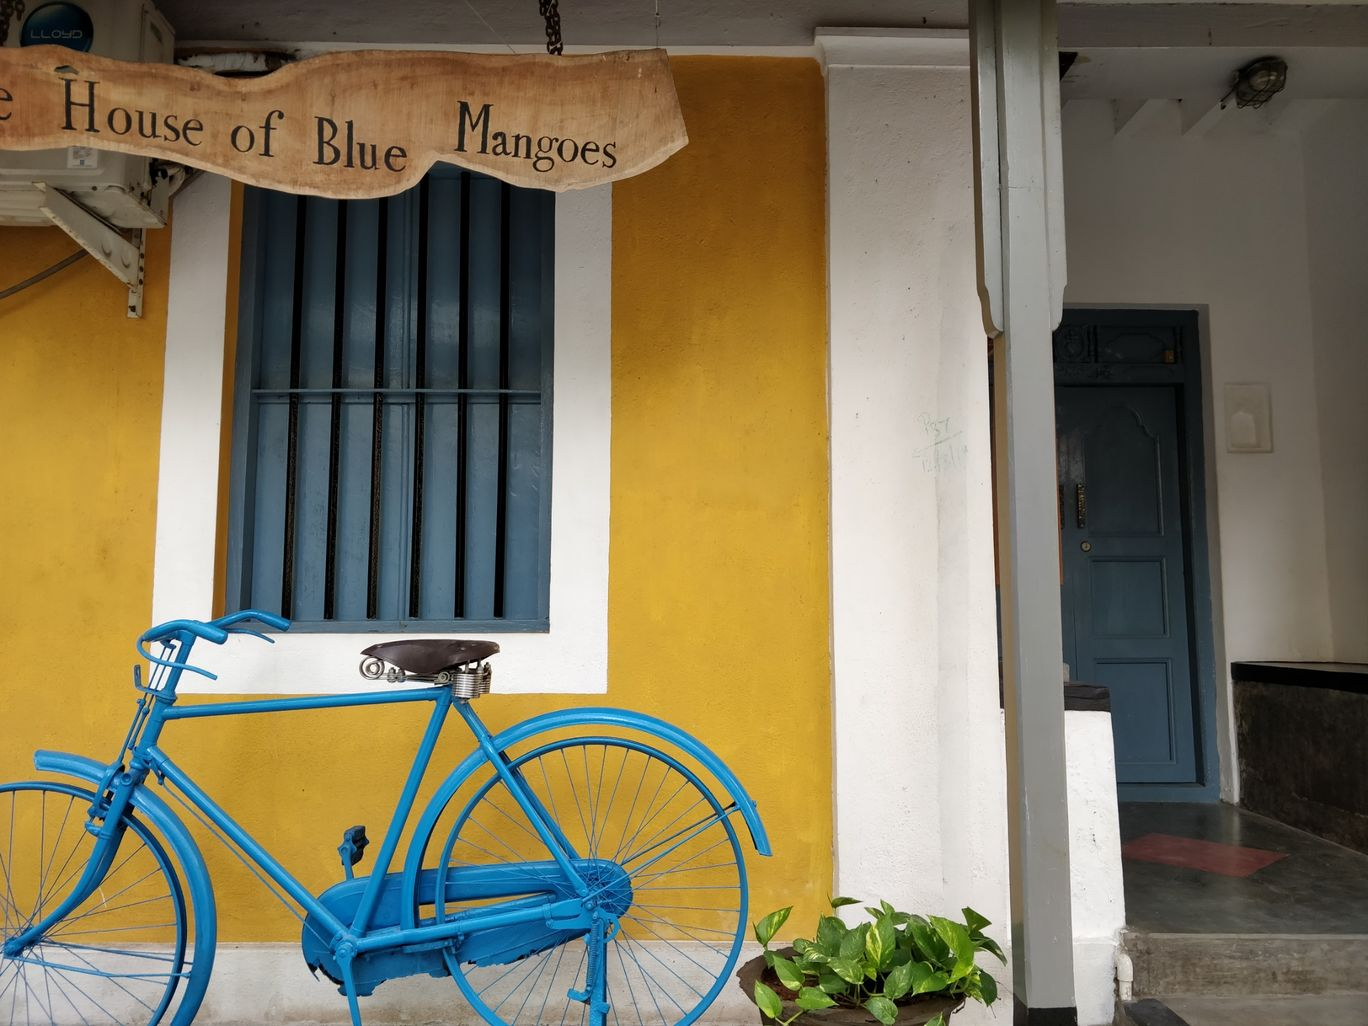 Photo of The House of Blue Mangoes By vijay kalidas